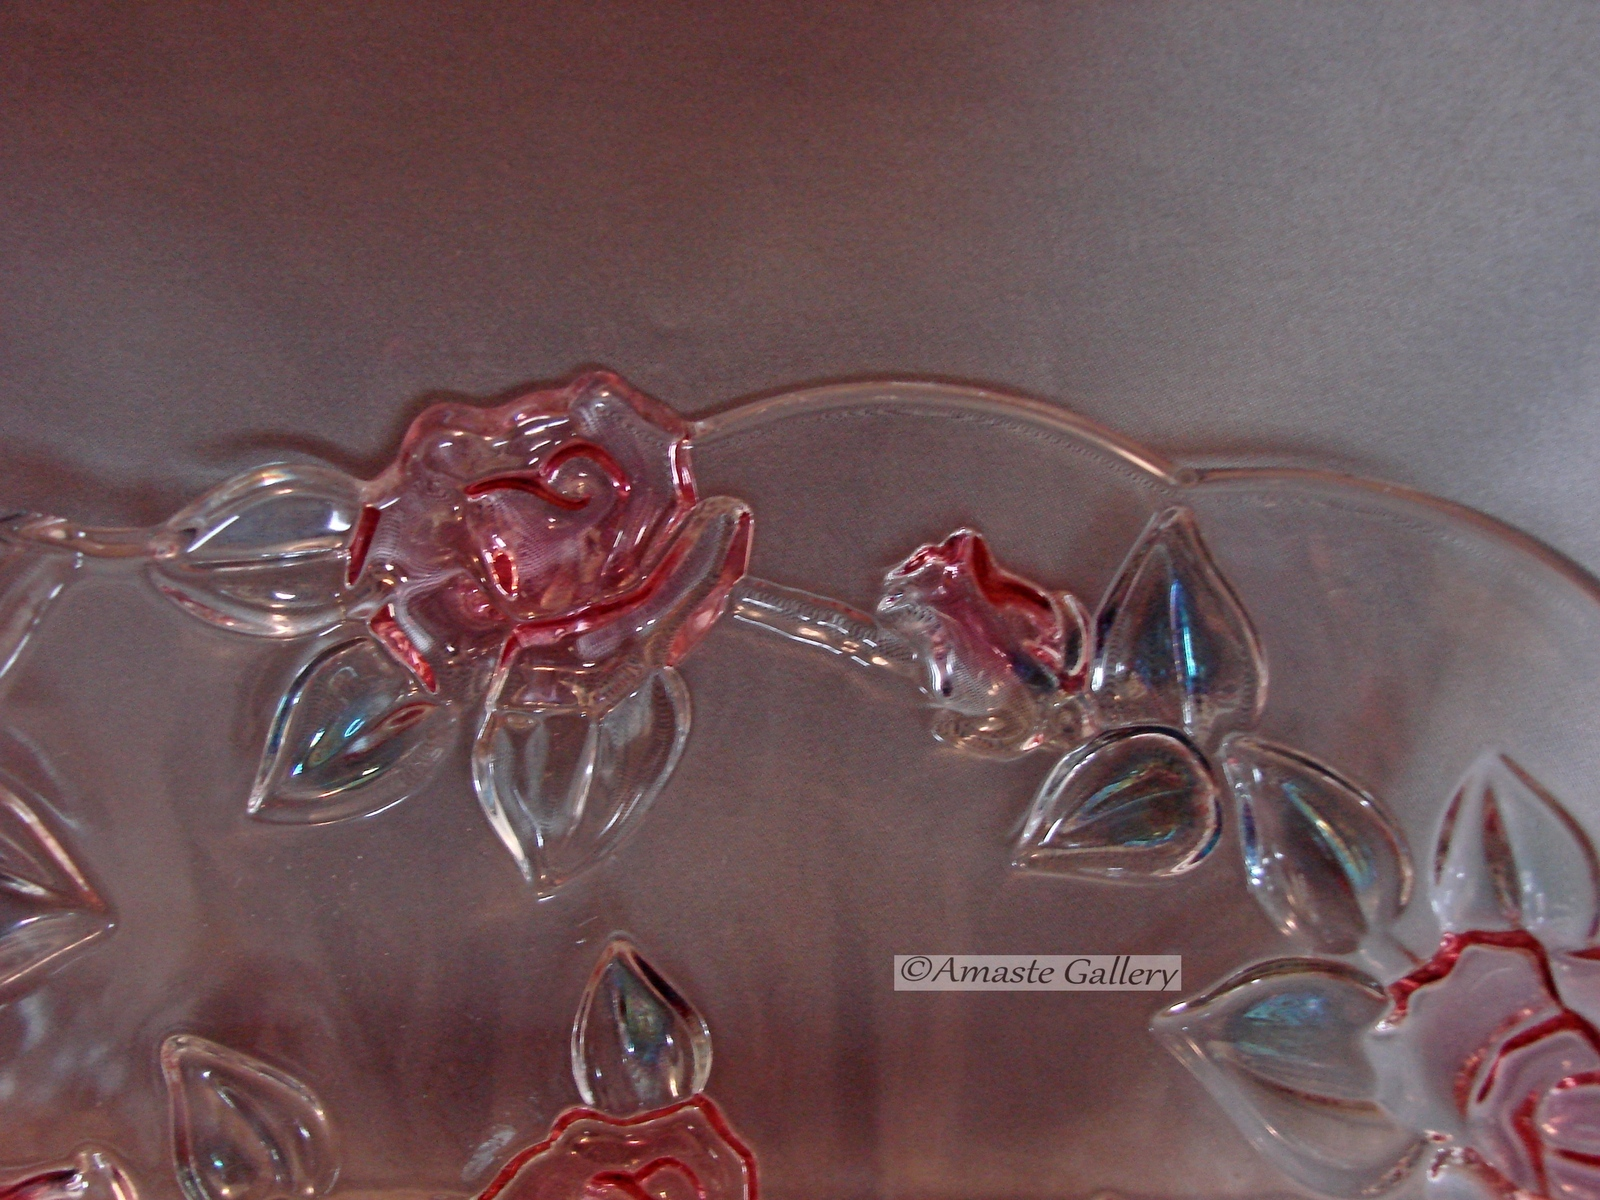 Mikasa Centerpiece Table Bowl with Raised Roses and Leaves image 3